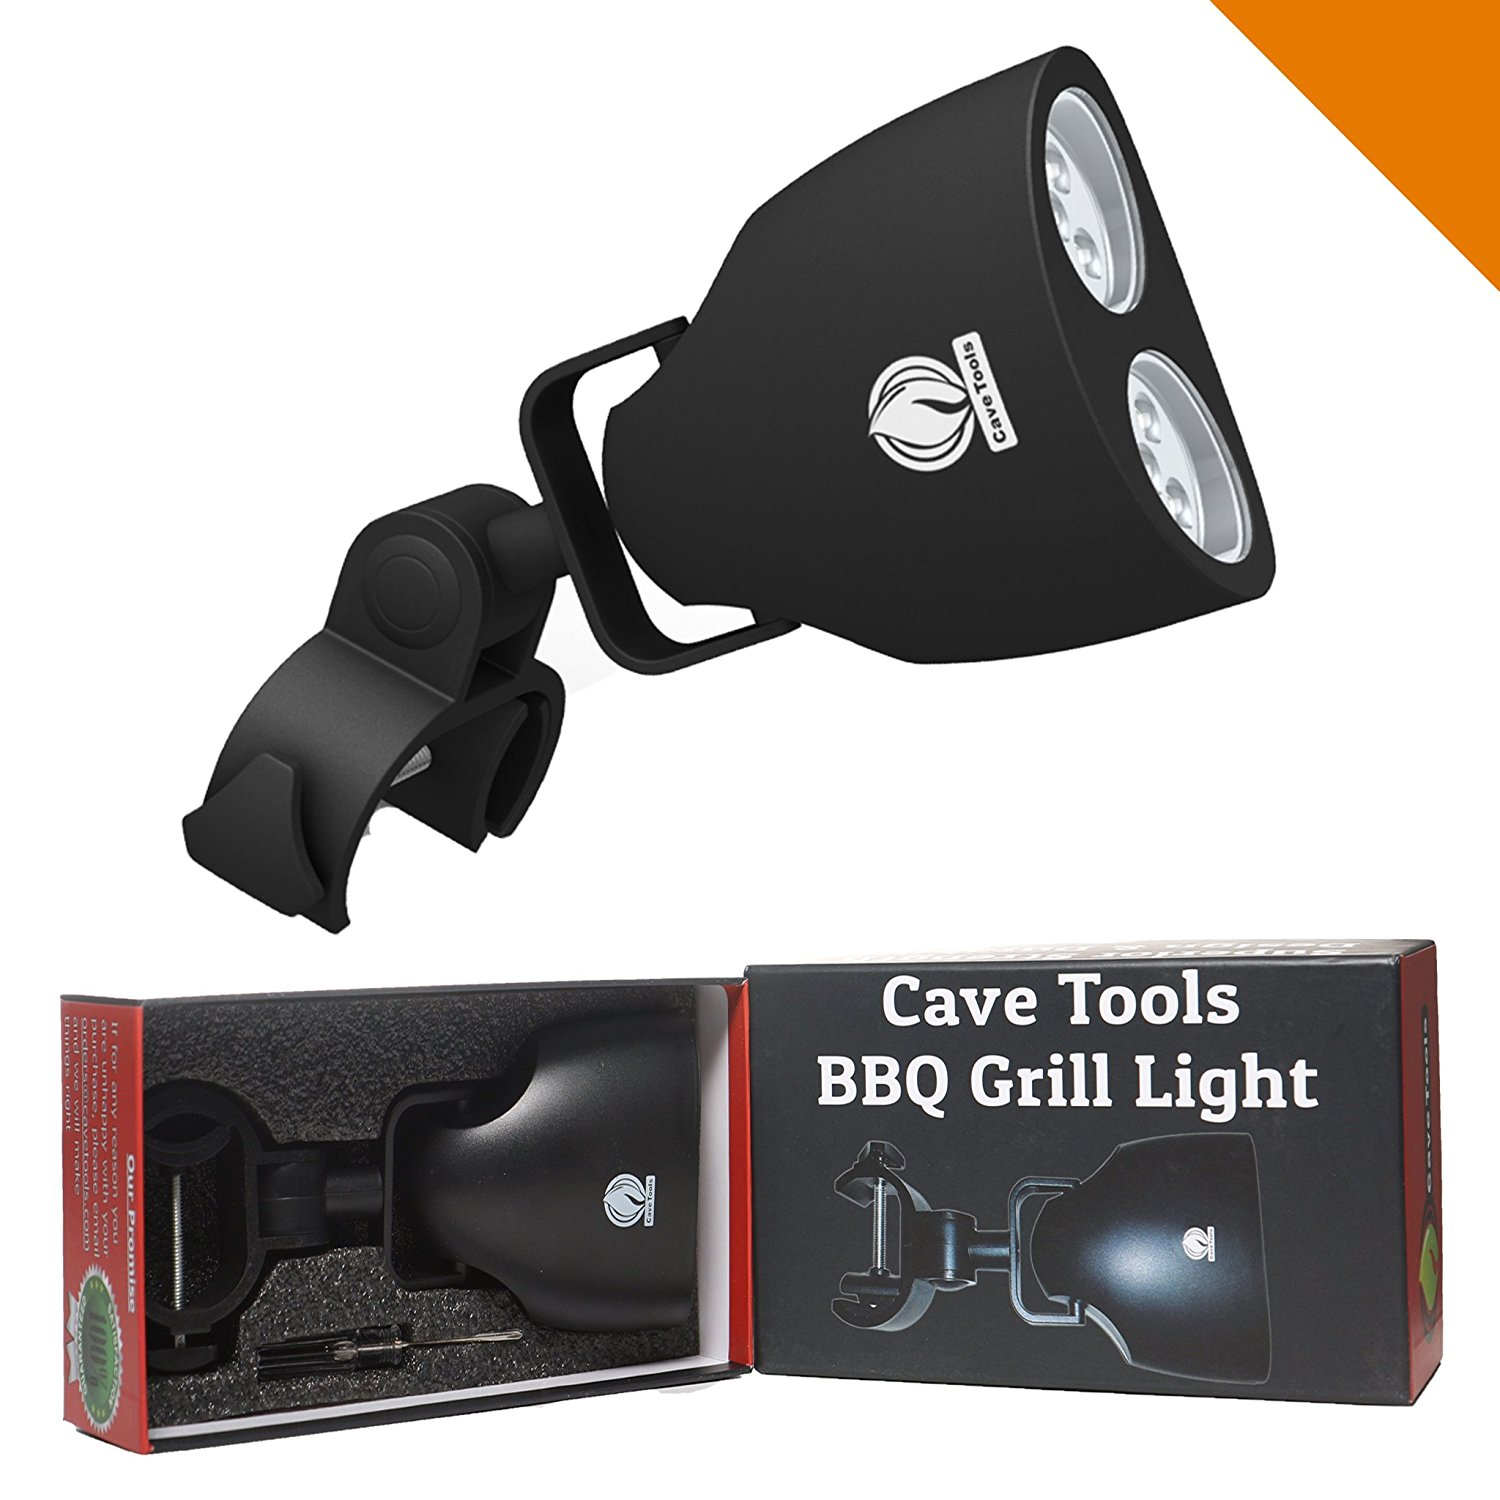 Cave Tools BBQ Grill Light